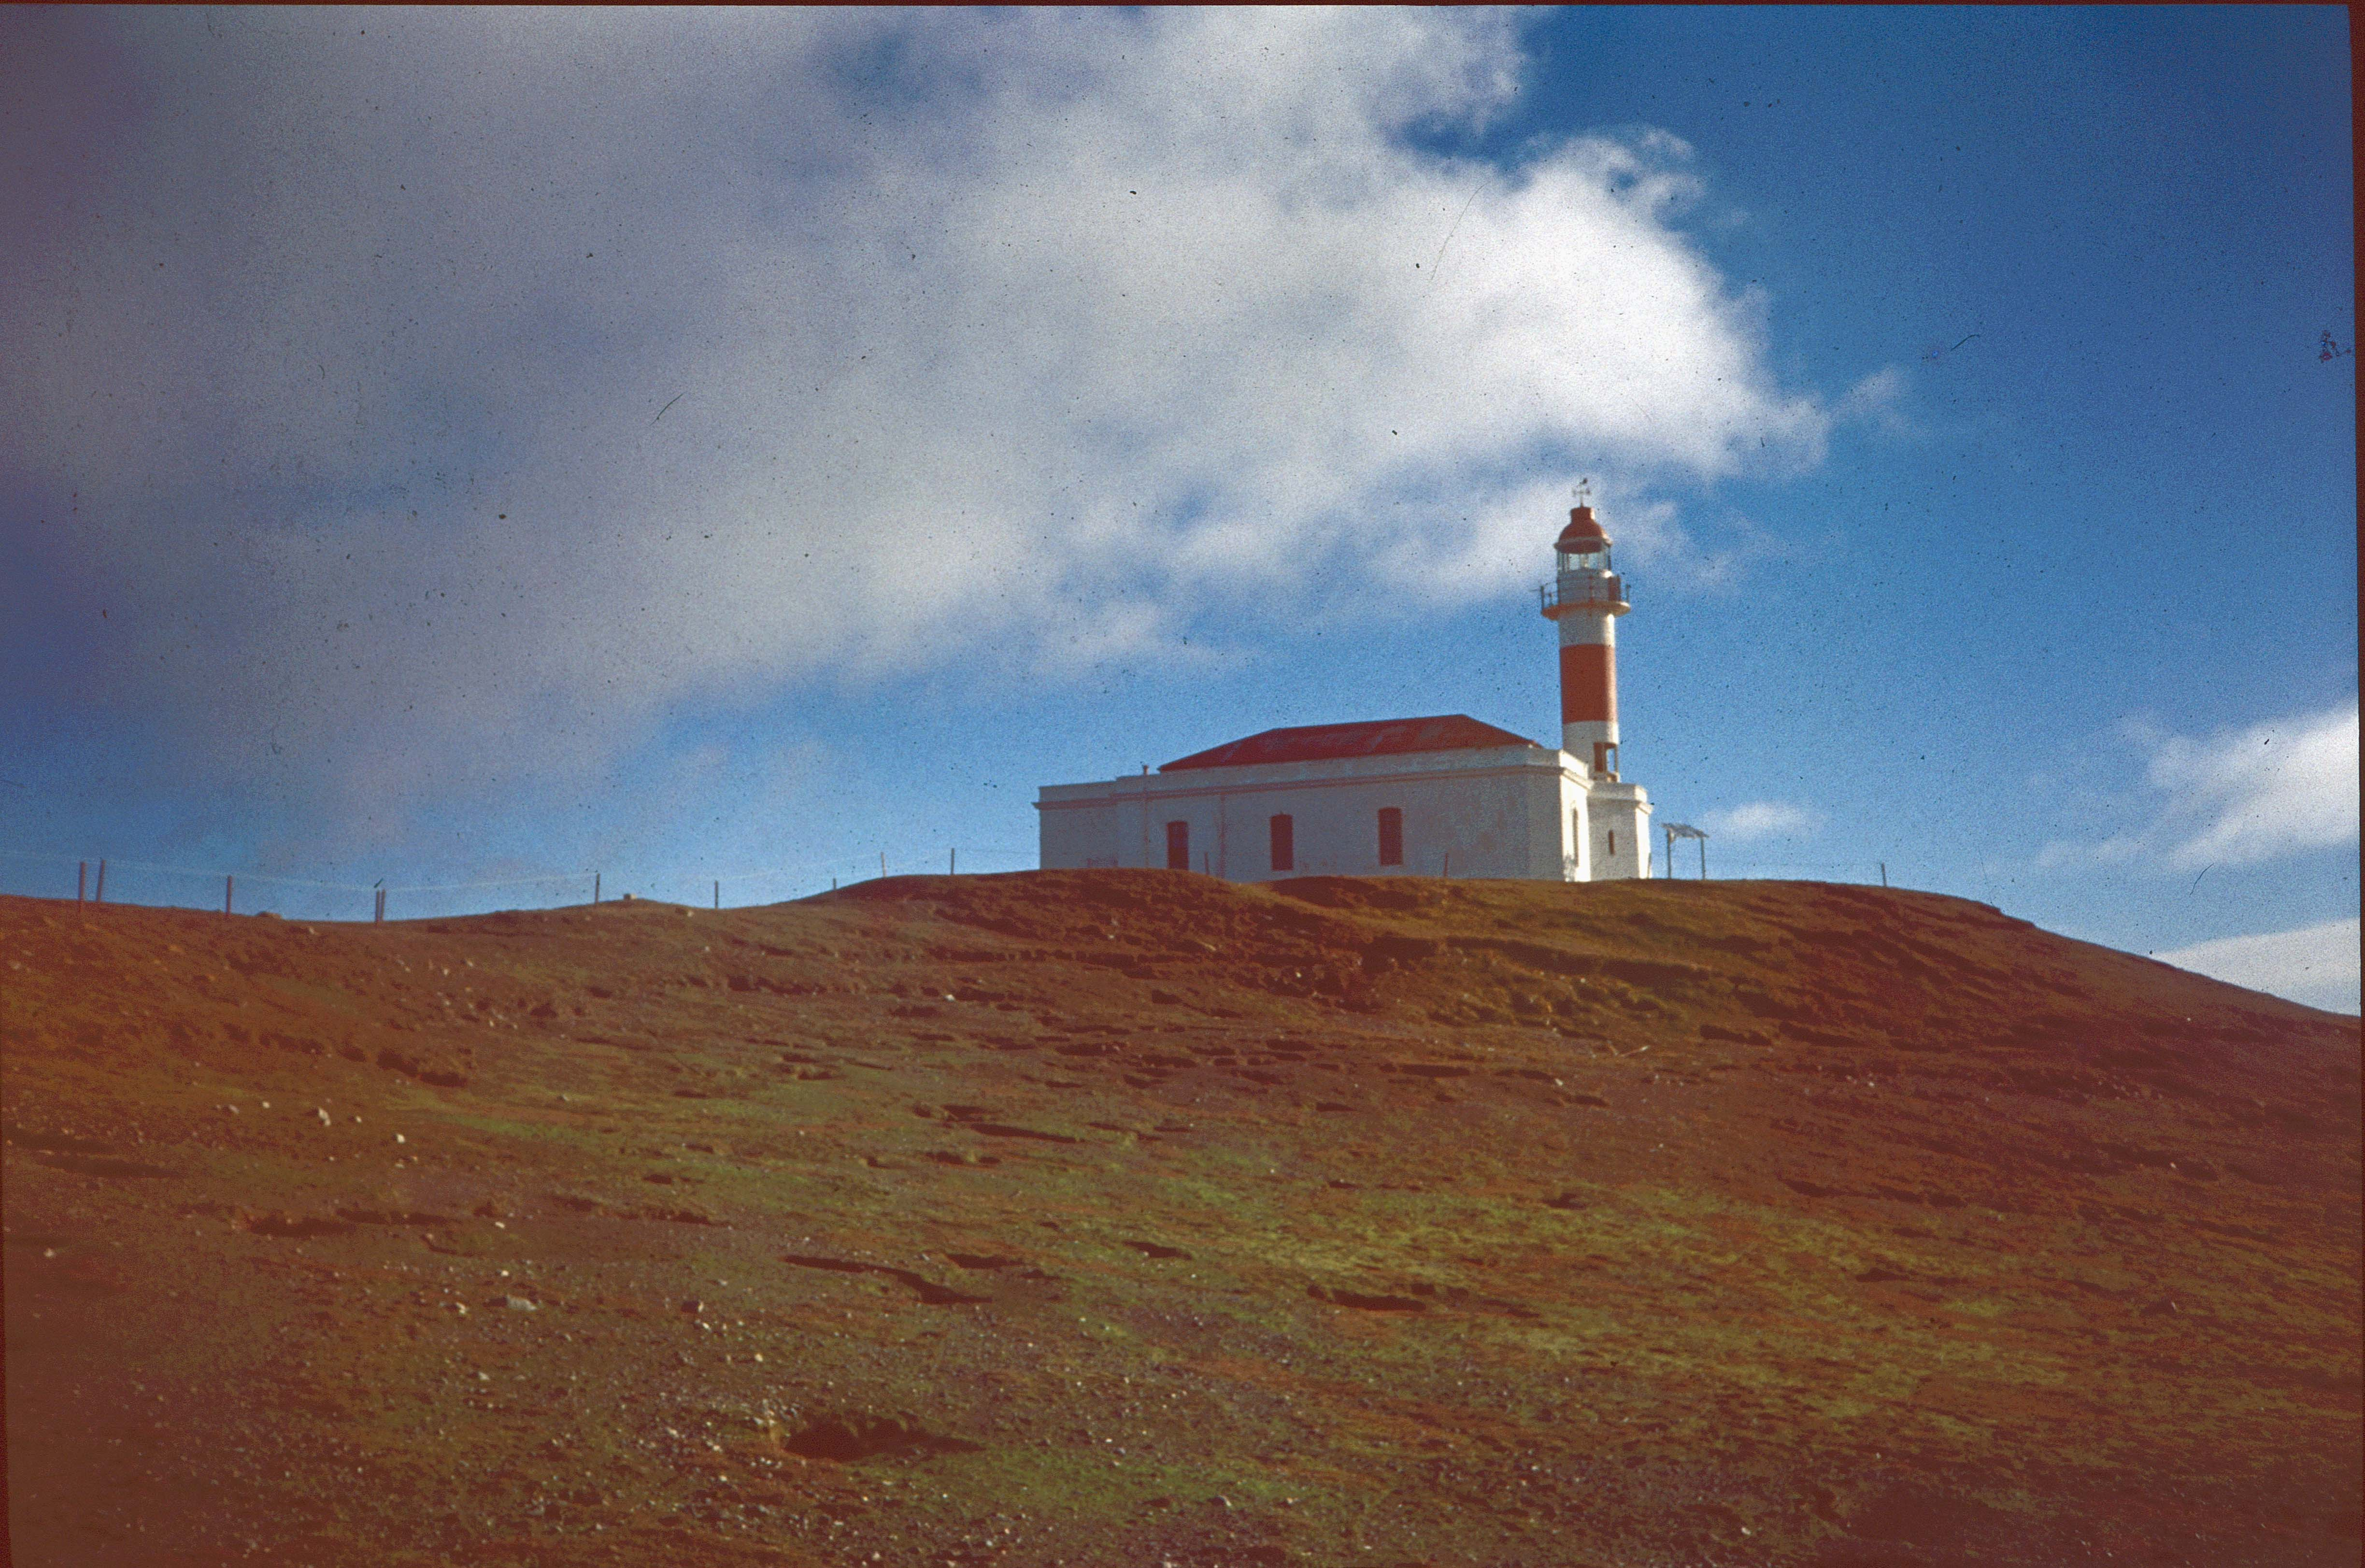 Enterreno - Fotos históricas de chile - fotos antiguas de Chile - Faro Punta Delgada en los 90s.